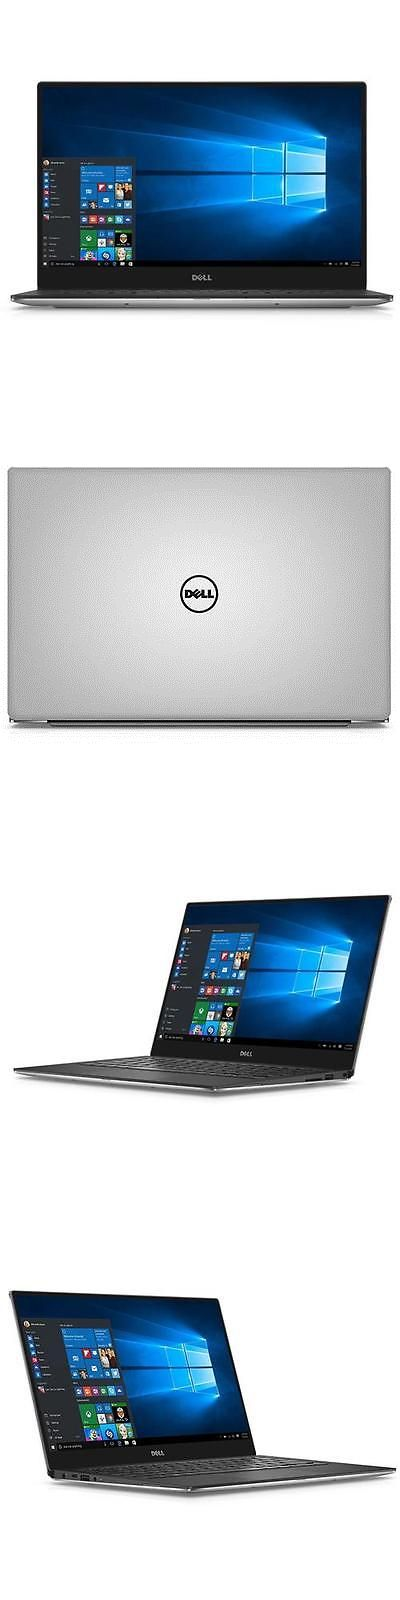 general for sale: Dell Xps 13.3 Quad Hd+ Infinityedge Touch Notebook Intel Core I5-7200U 2.5Ghz -> BUY IT NOW ONLY: $1199 on eBay!